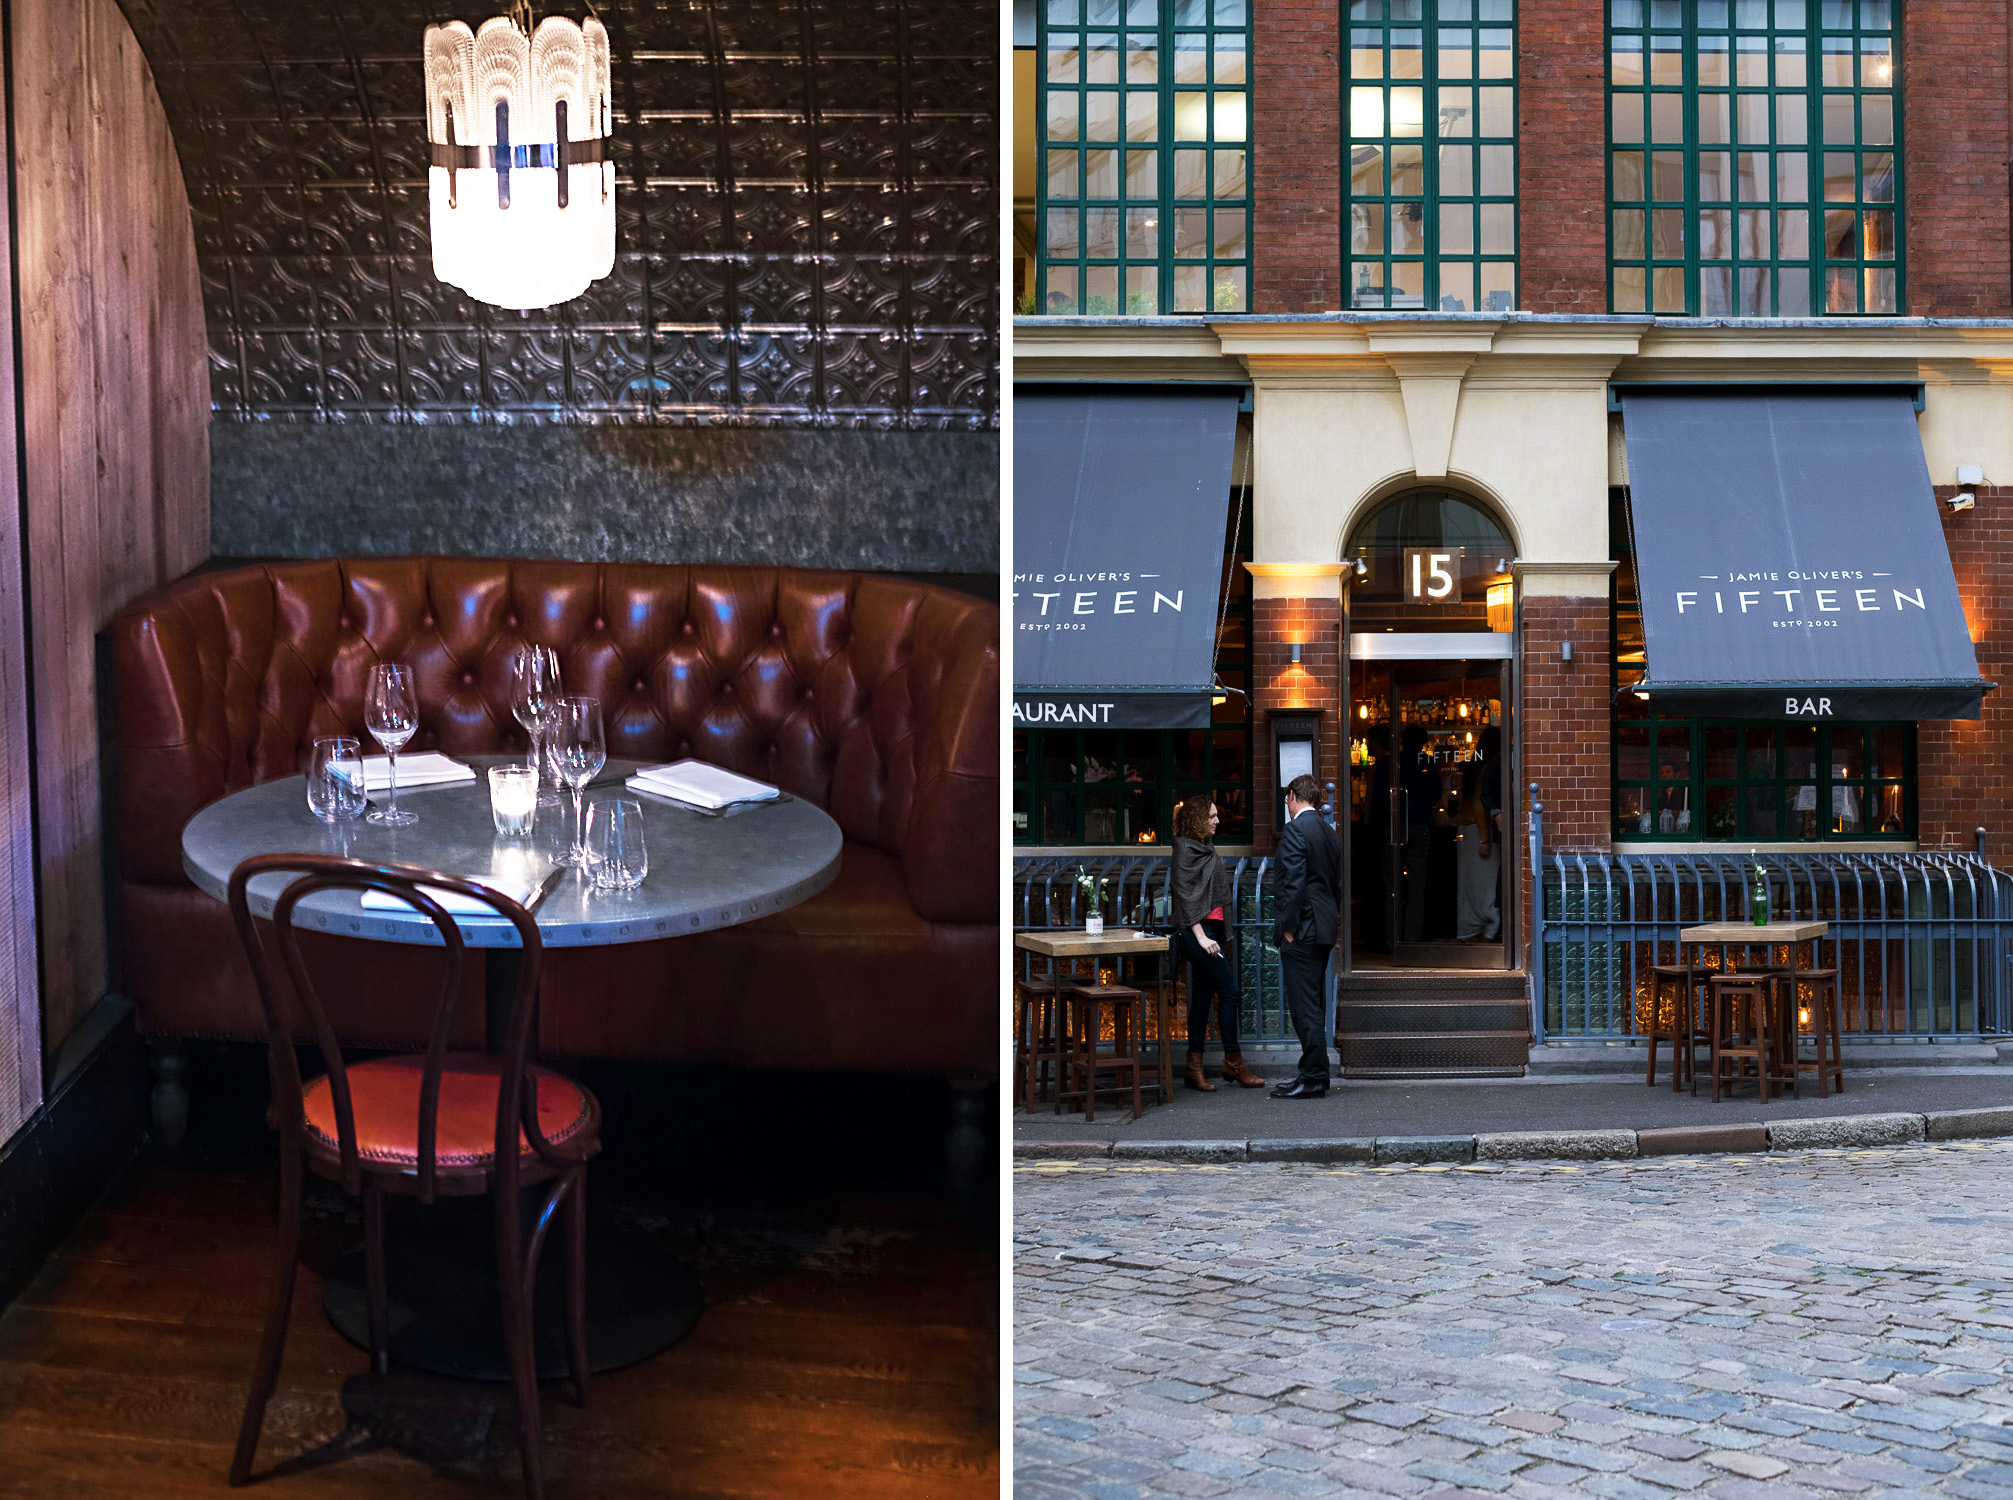 Dinner at Jamie Oliver's Fifteen in London